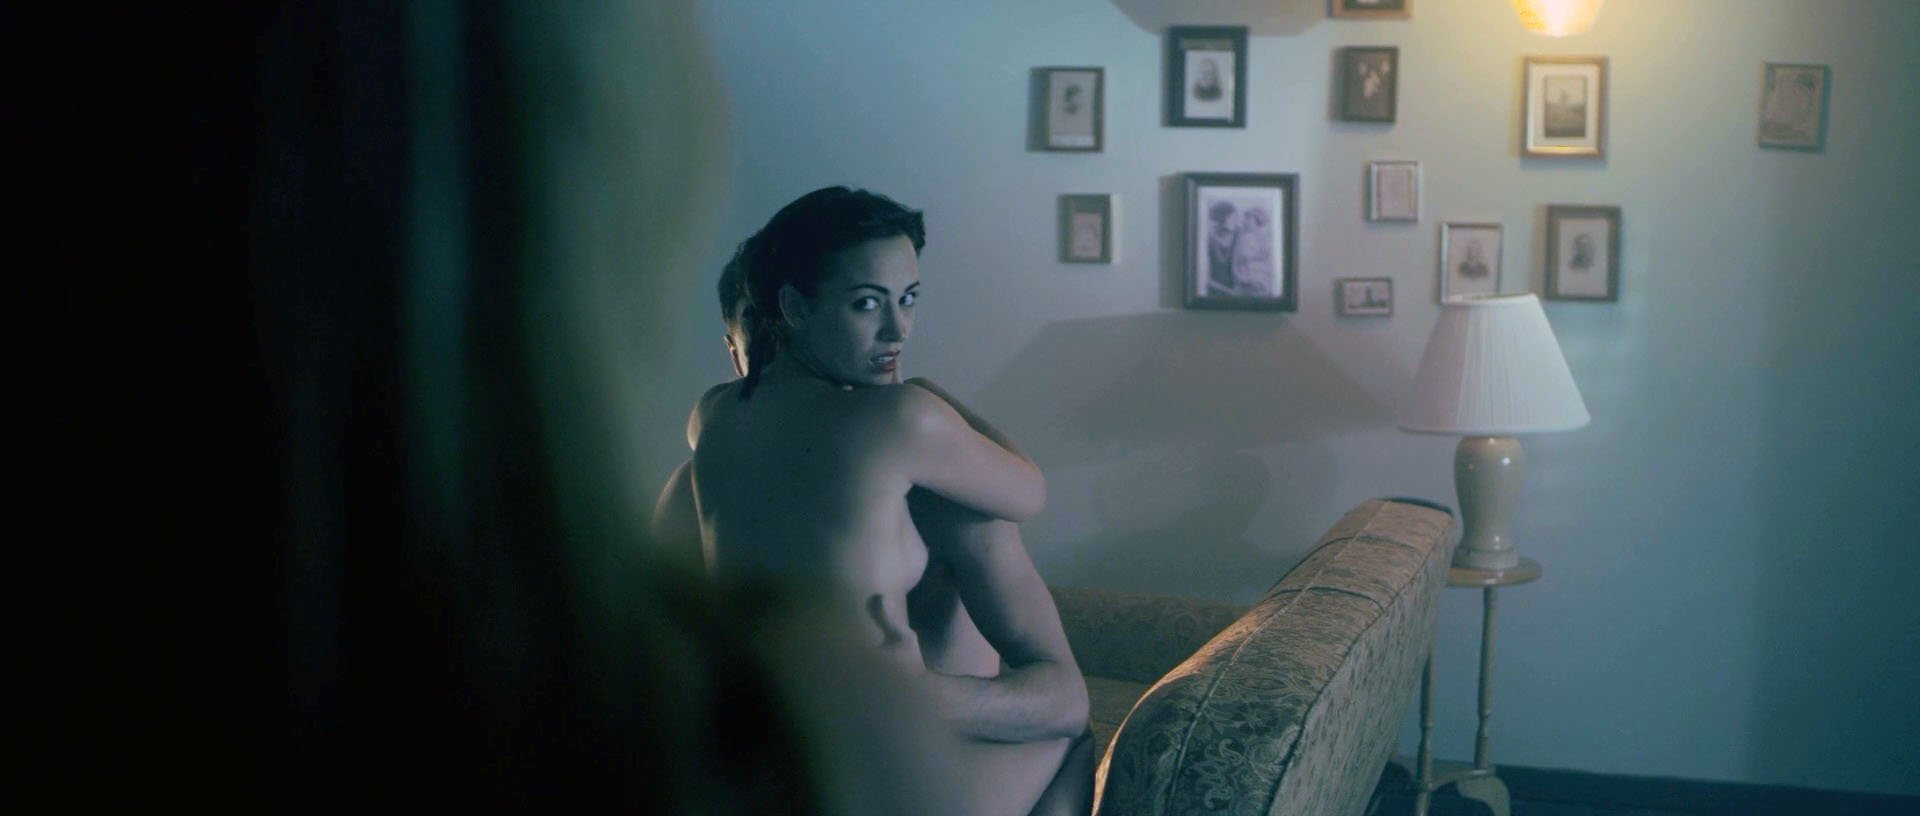 Krista Madison nude - The Sublet (2015)